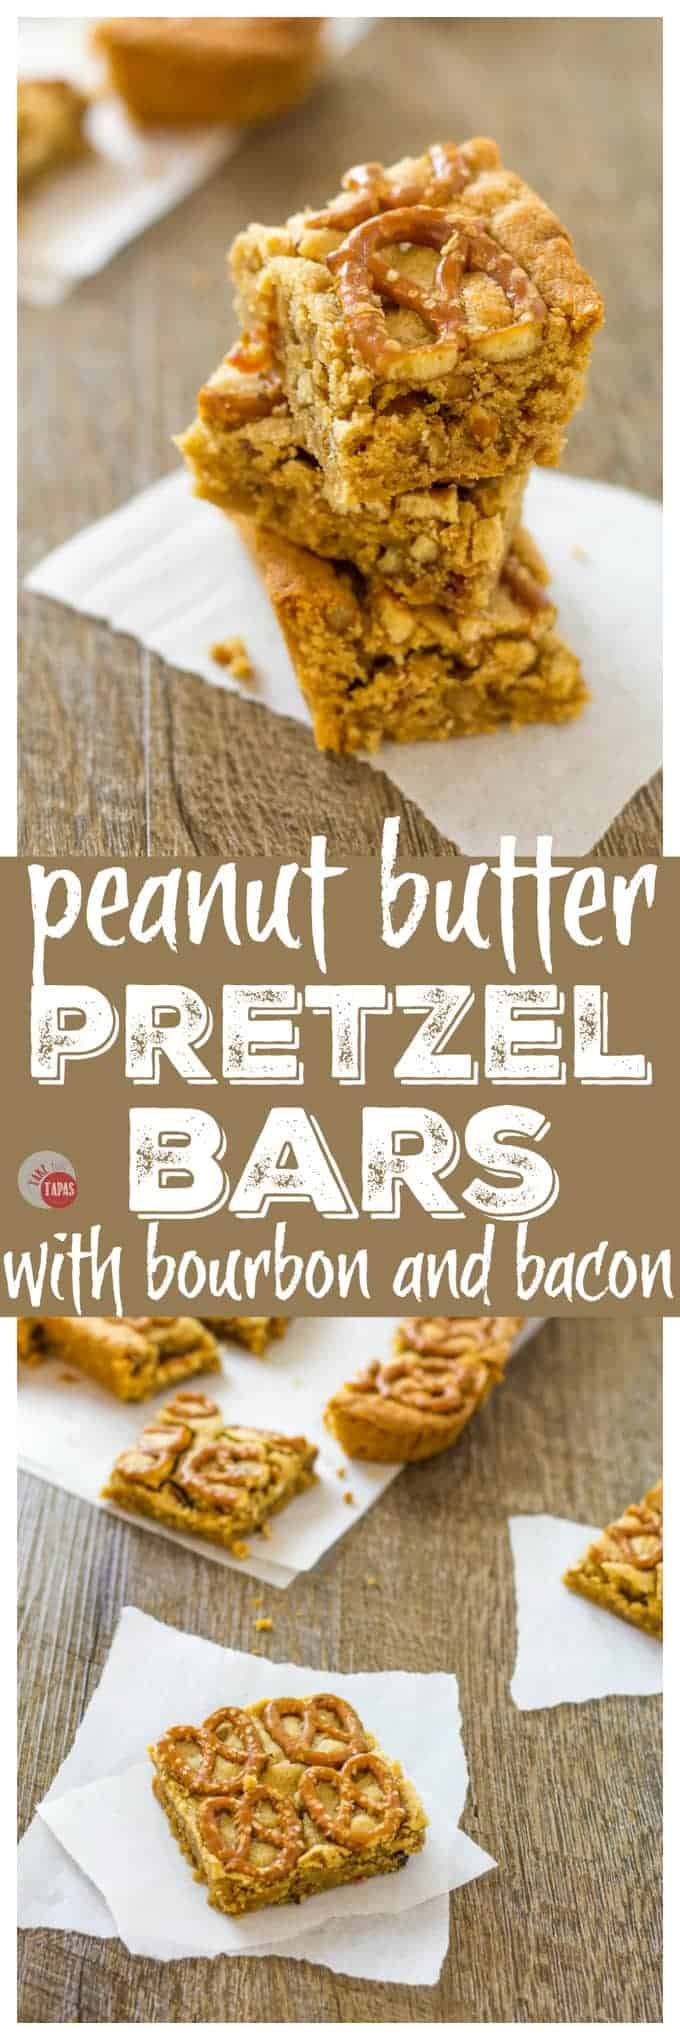 These Peanut Butter Pretzel Bars have Bacon AND Bourbon too! | Take Two Tapas | #PeanutButter #Pretzels #PeanutButterBars #BrownieRecipe #Bacon #PeanutButterRecipes